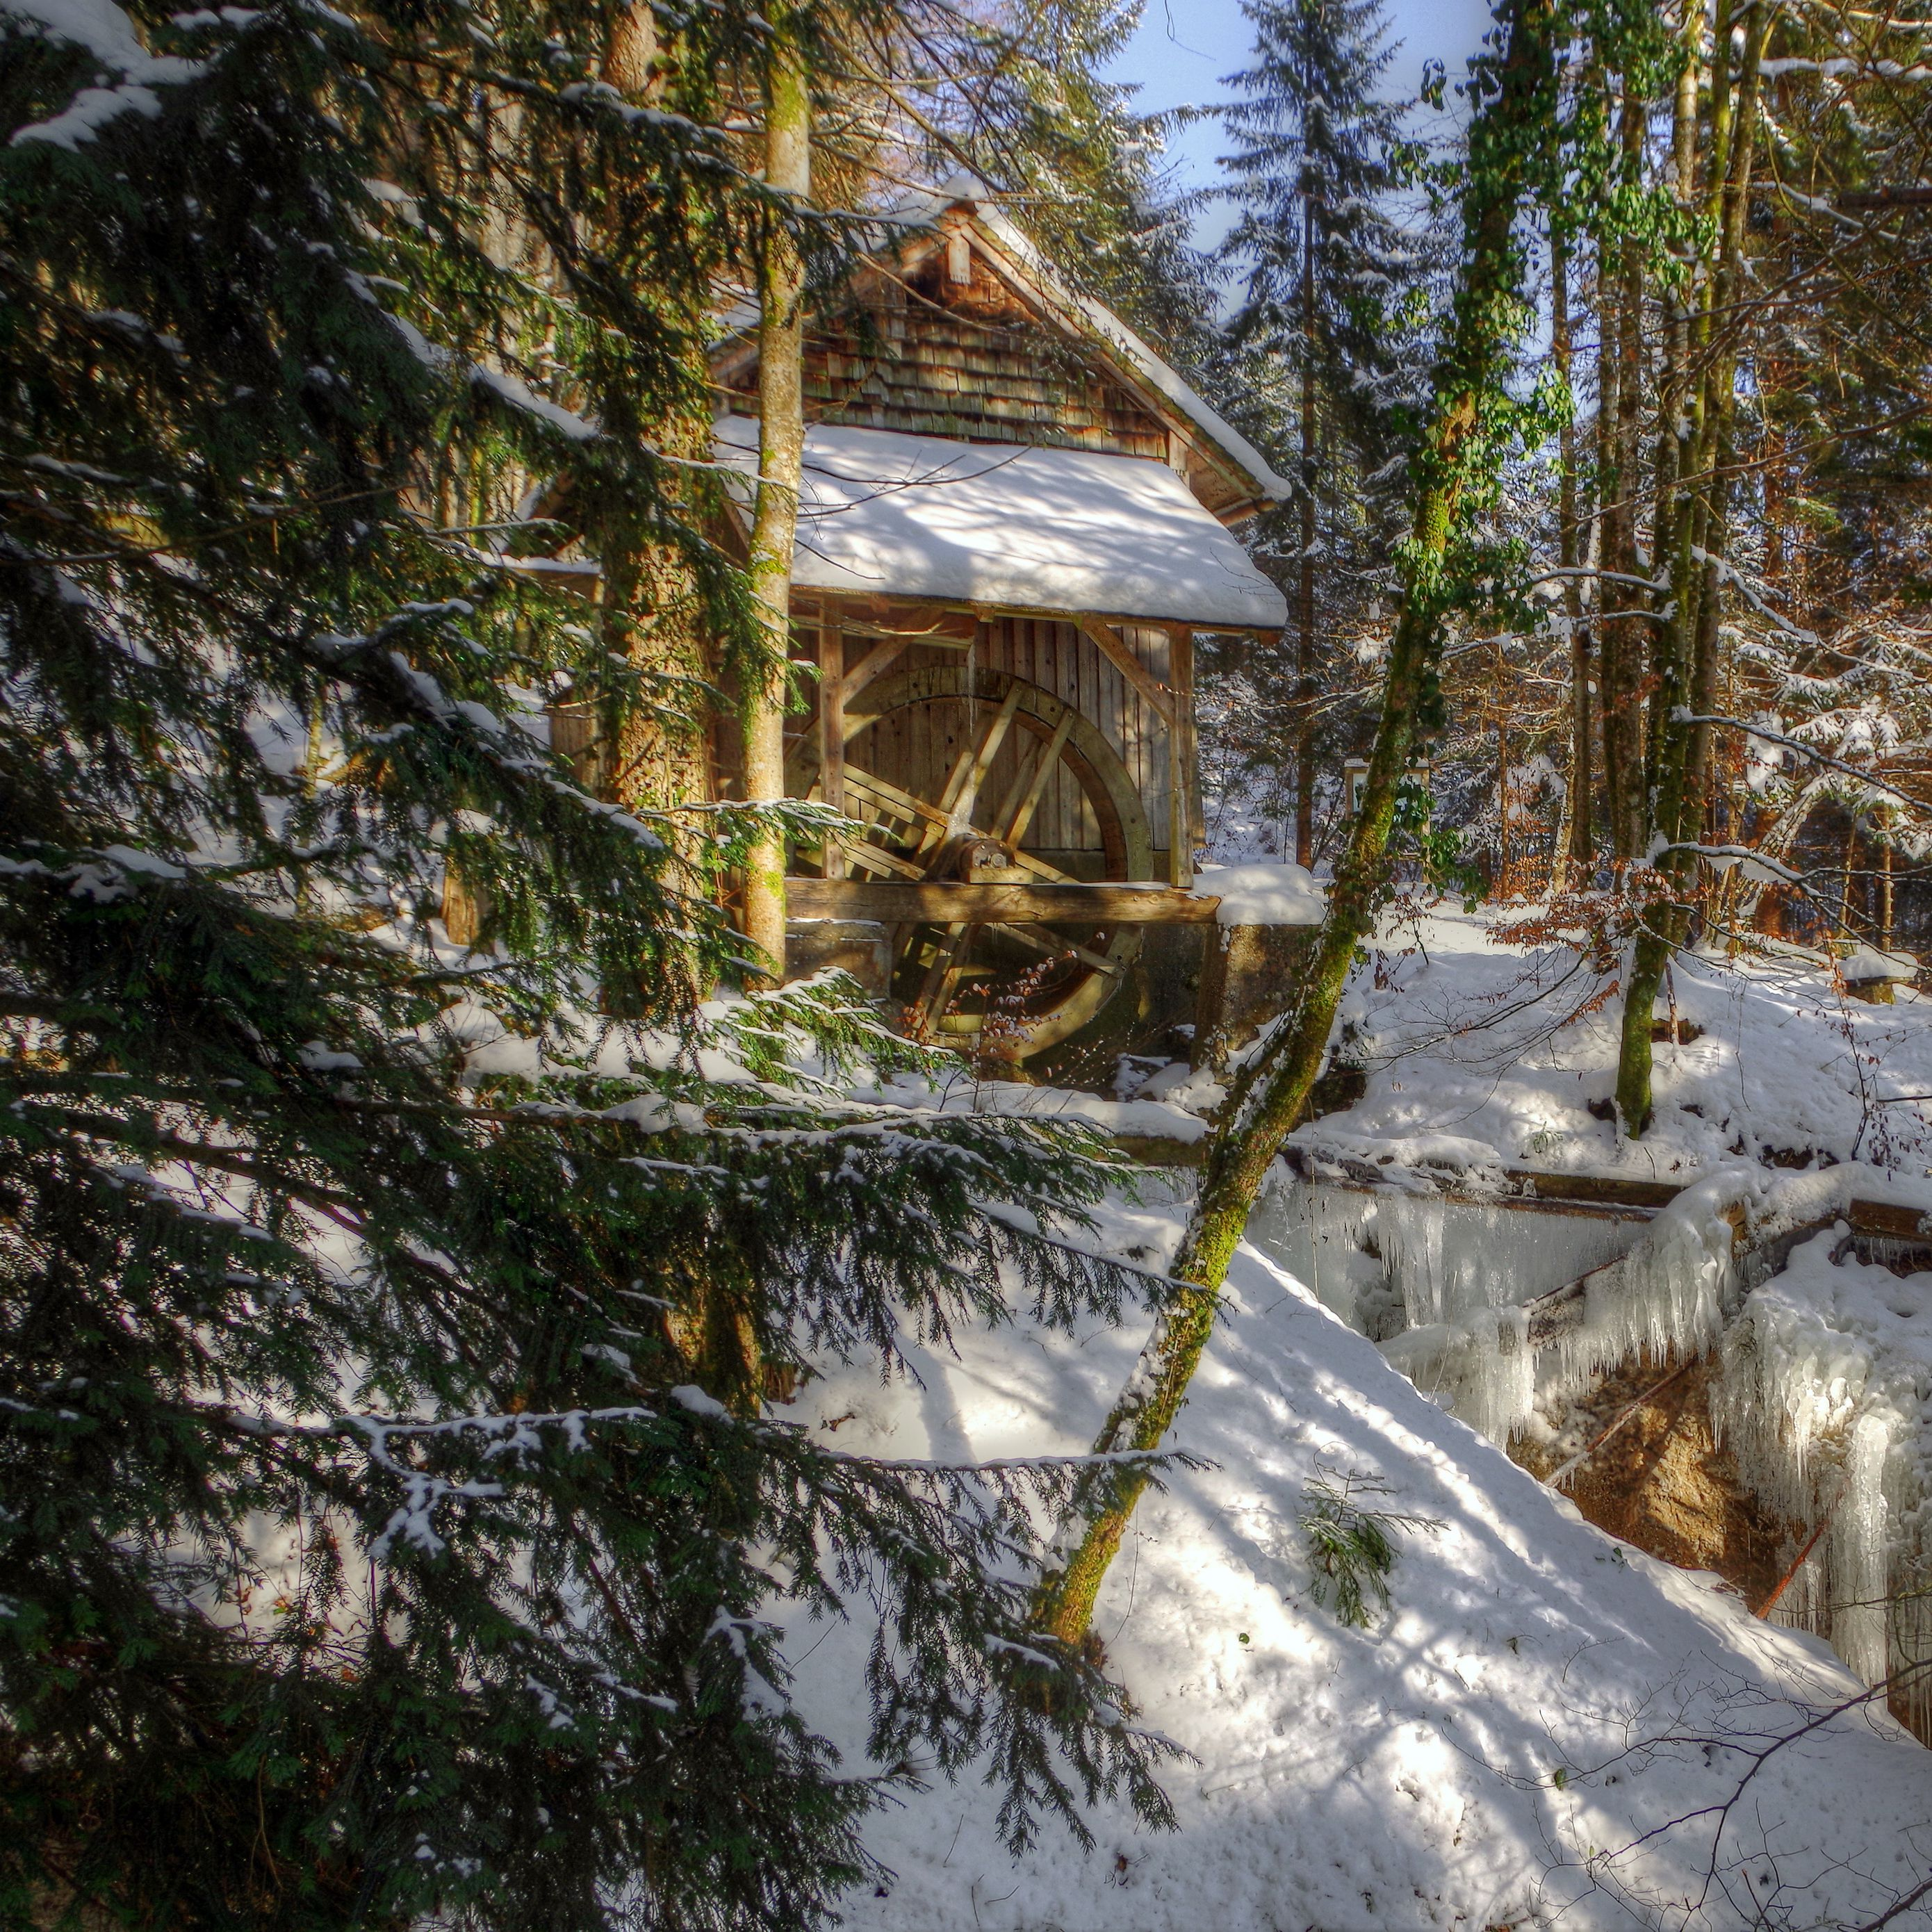 2780x2780 Wallpaper winter, forest, river, mill, landscape